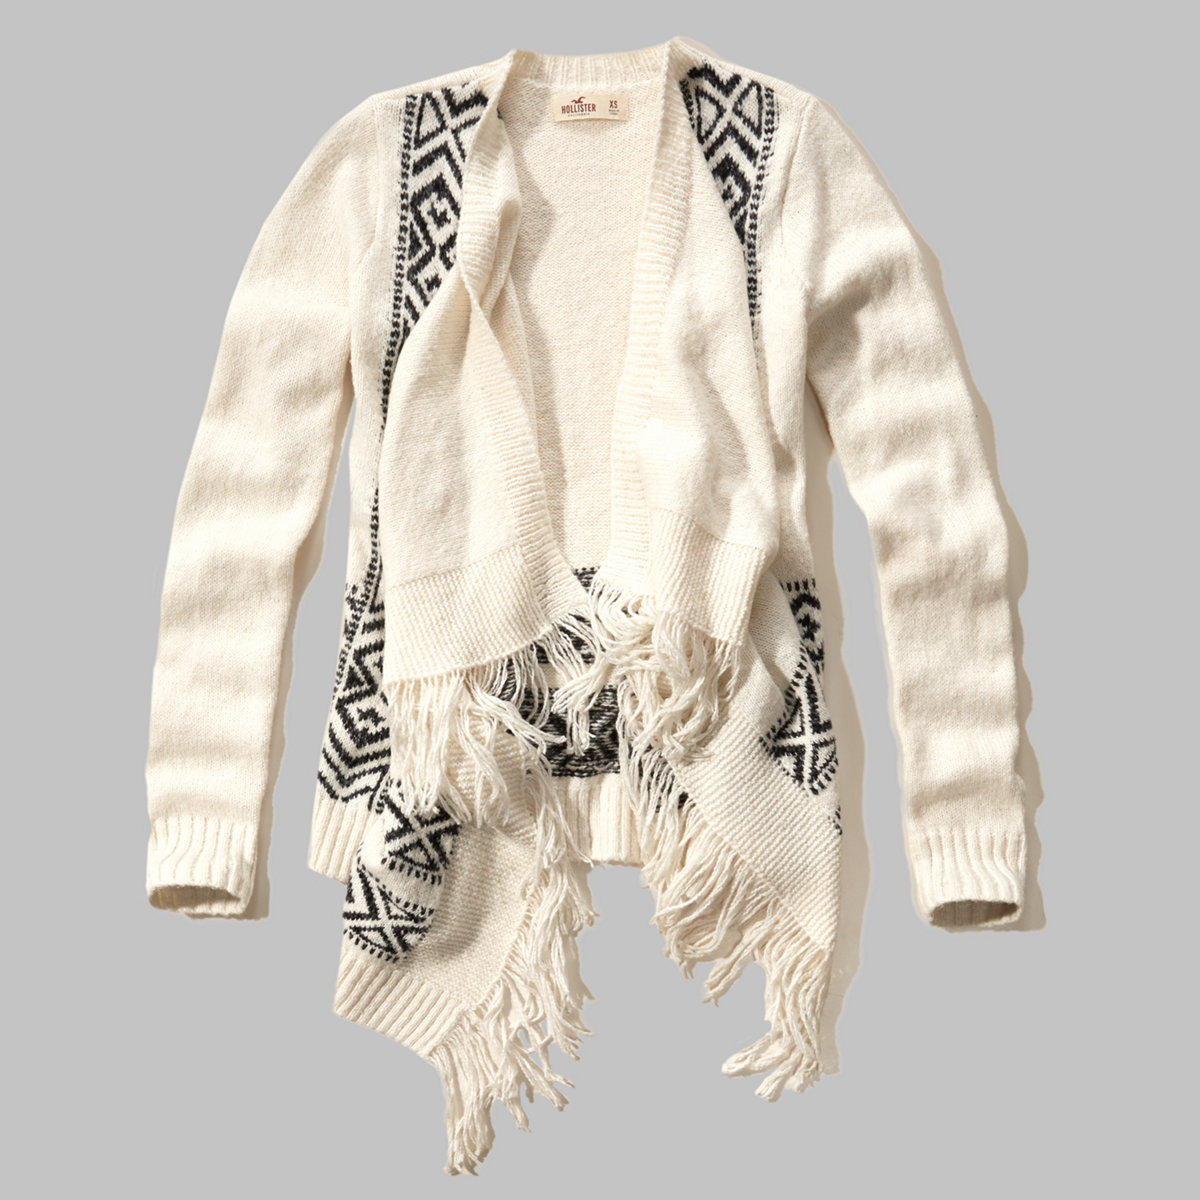 Patterned Blanket Cardigan Sweater